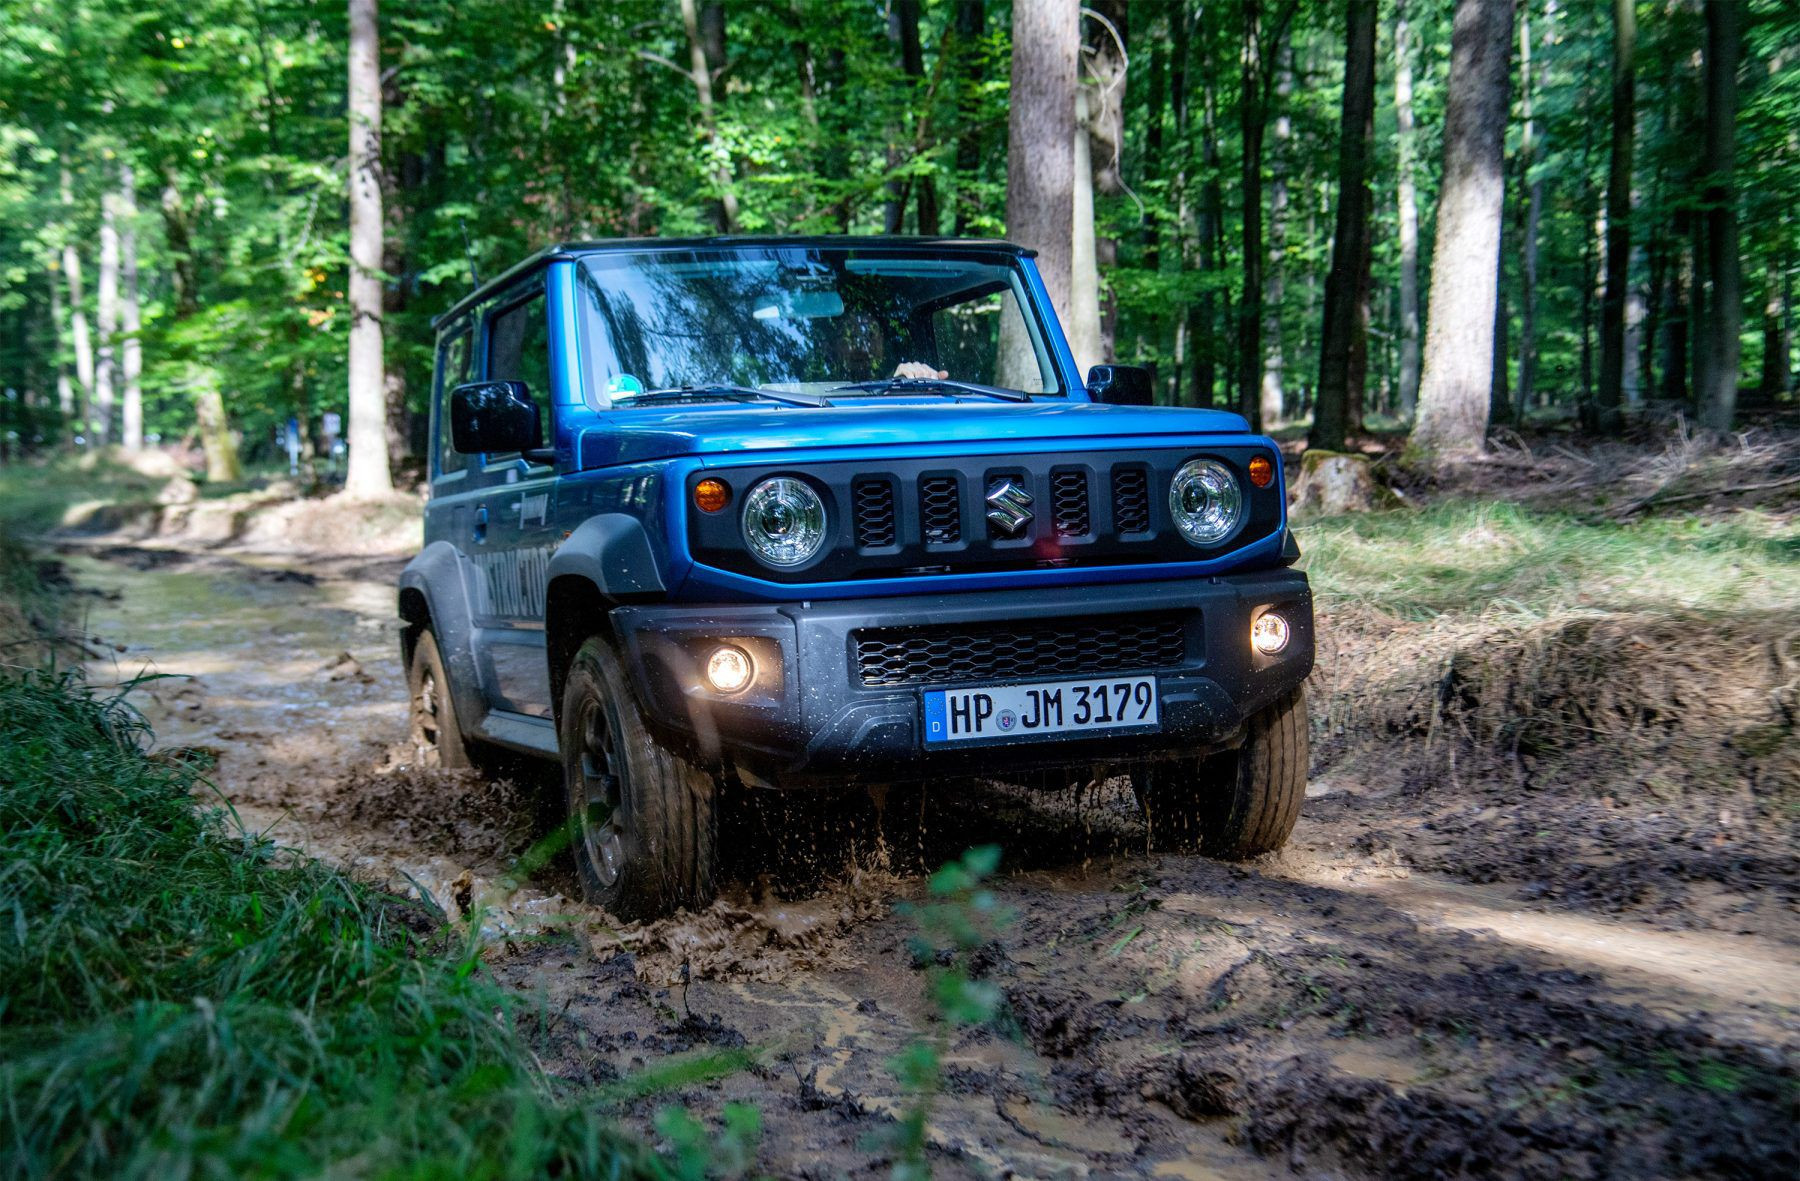 Blue Suzuki Jimny driving on mud